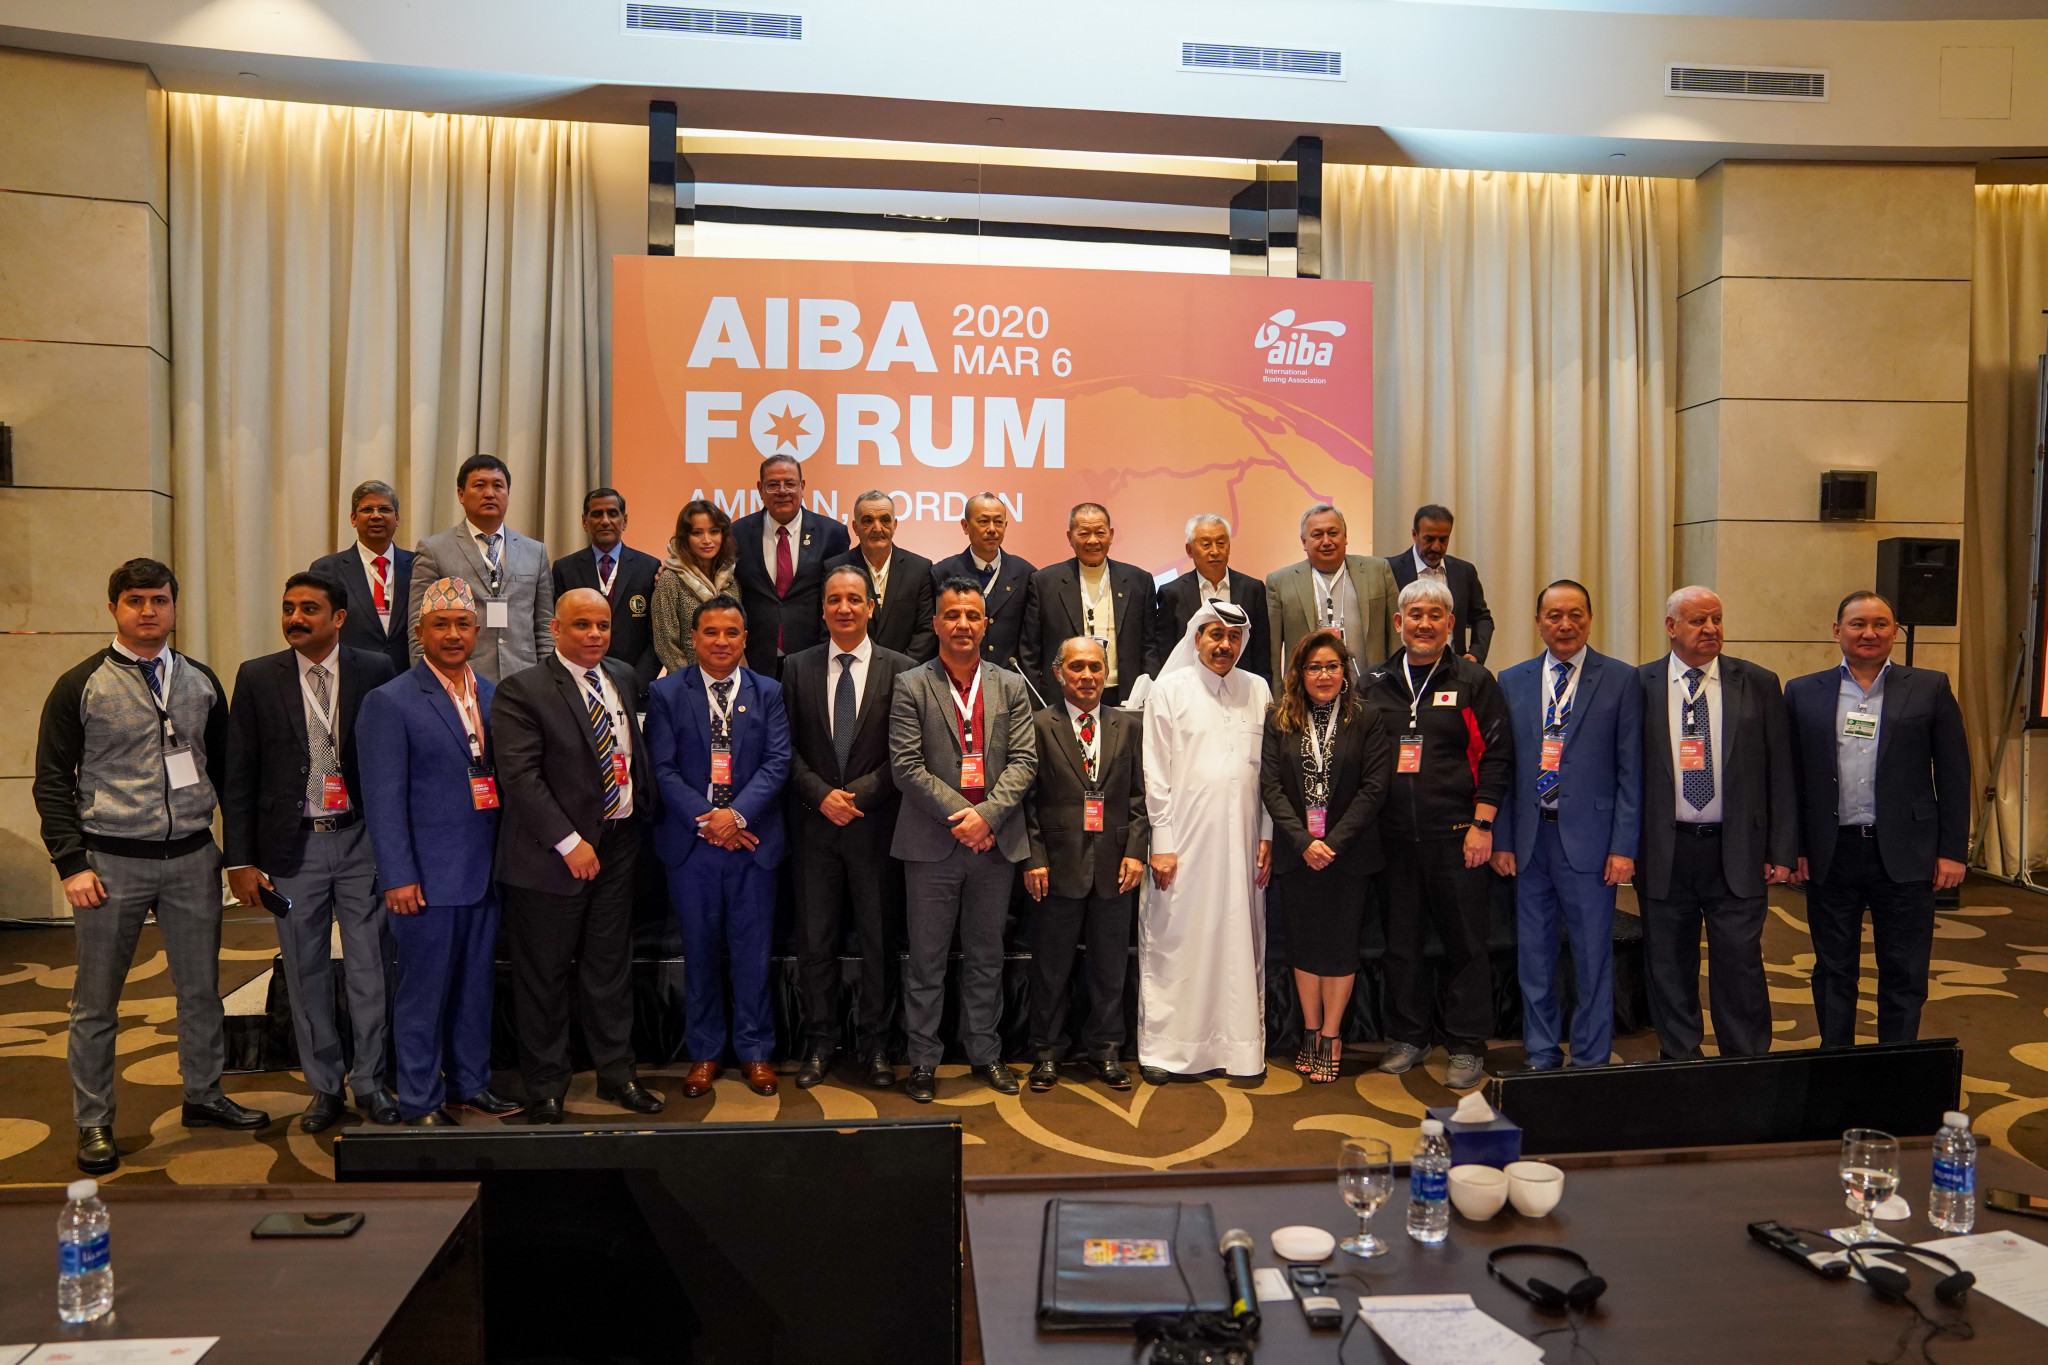 Umar Kremlev devised the AIBA Forums, which aim to create a dialogue in the boxing world ©AIBA